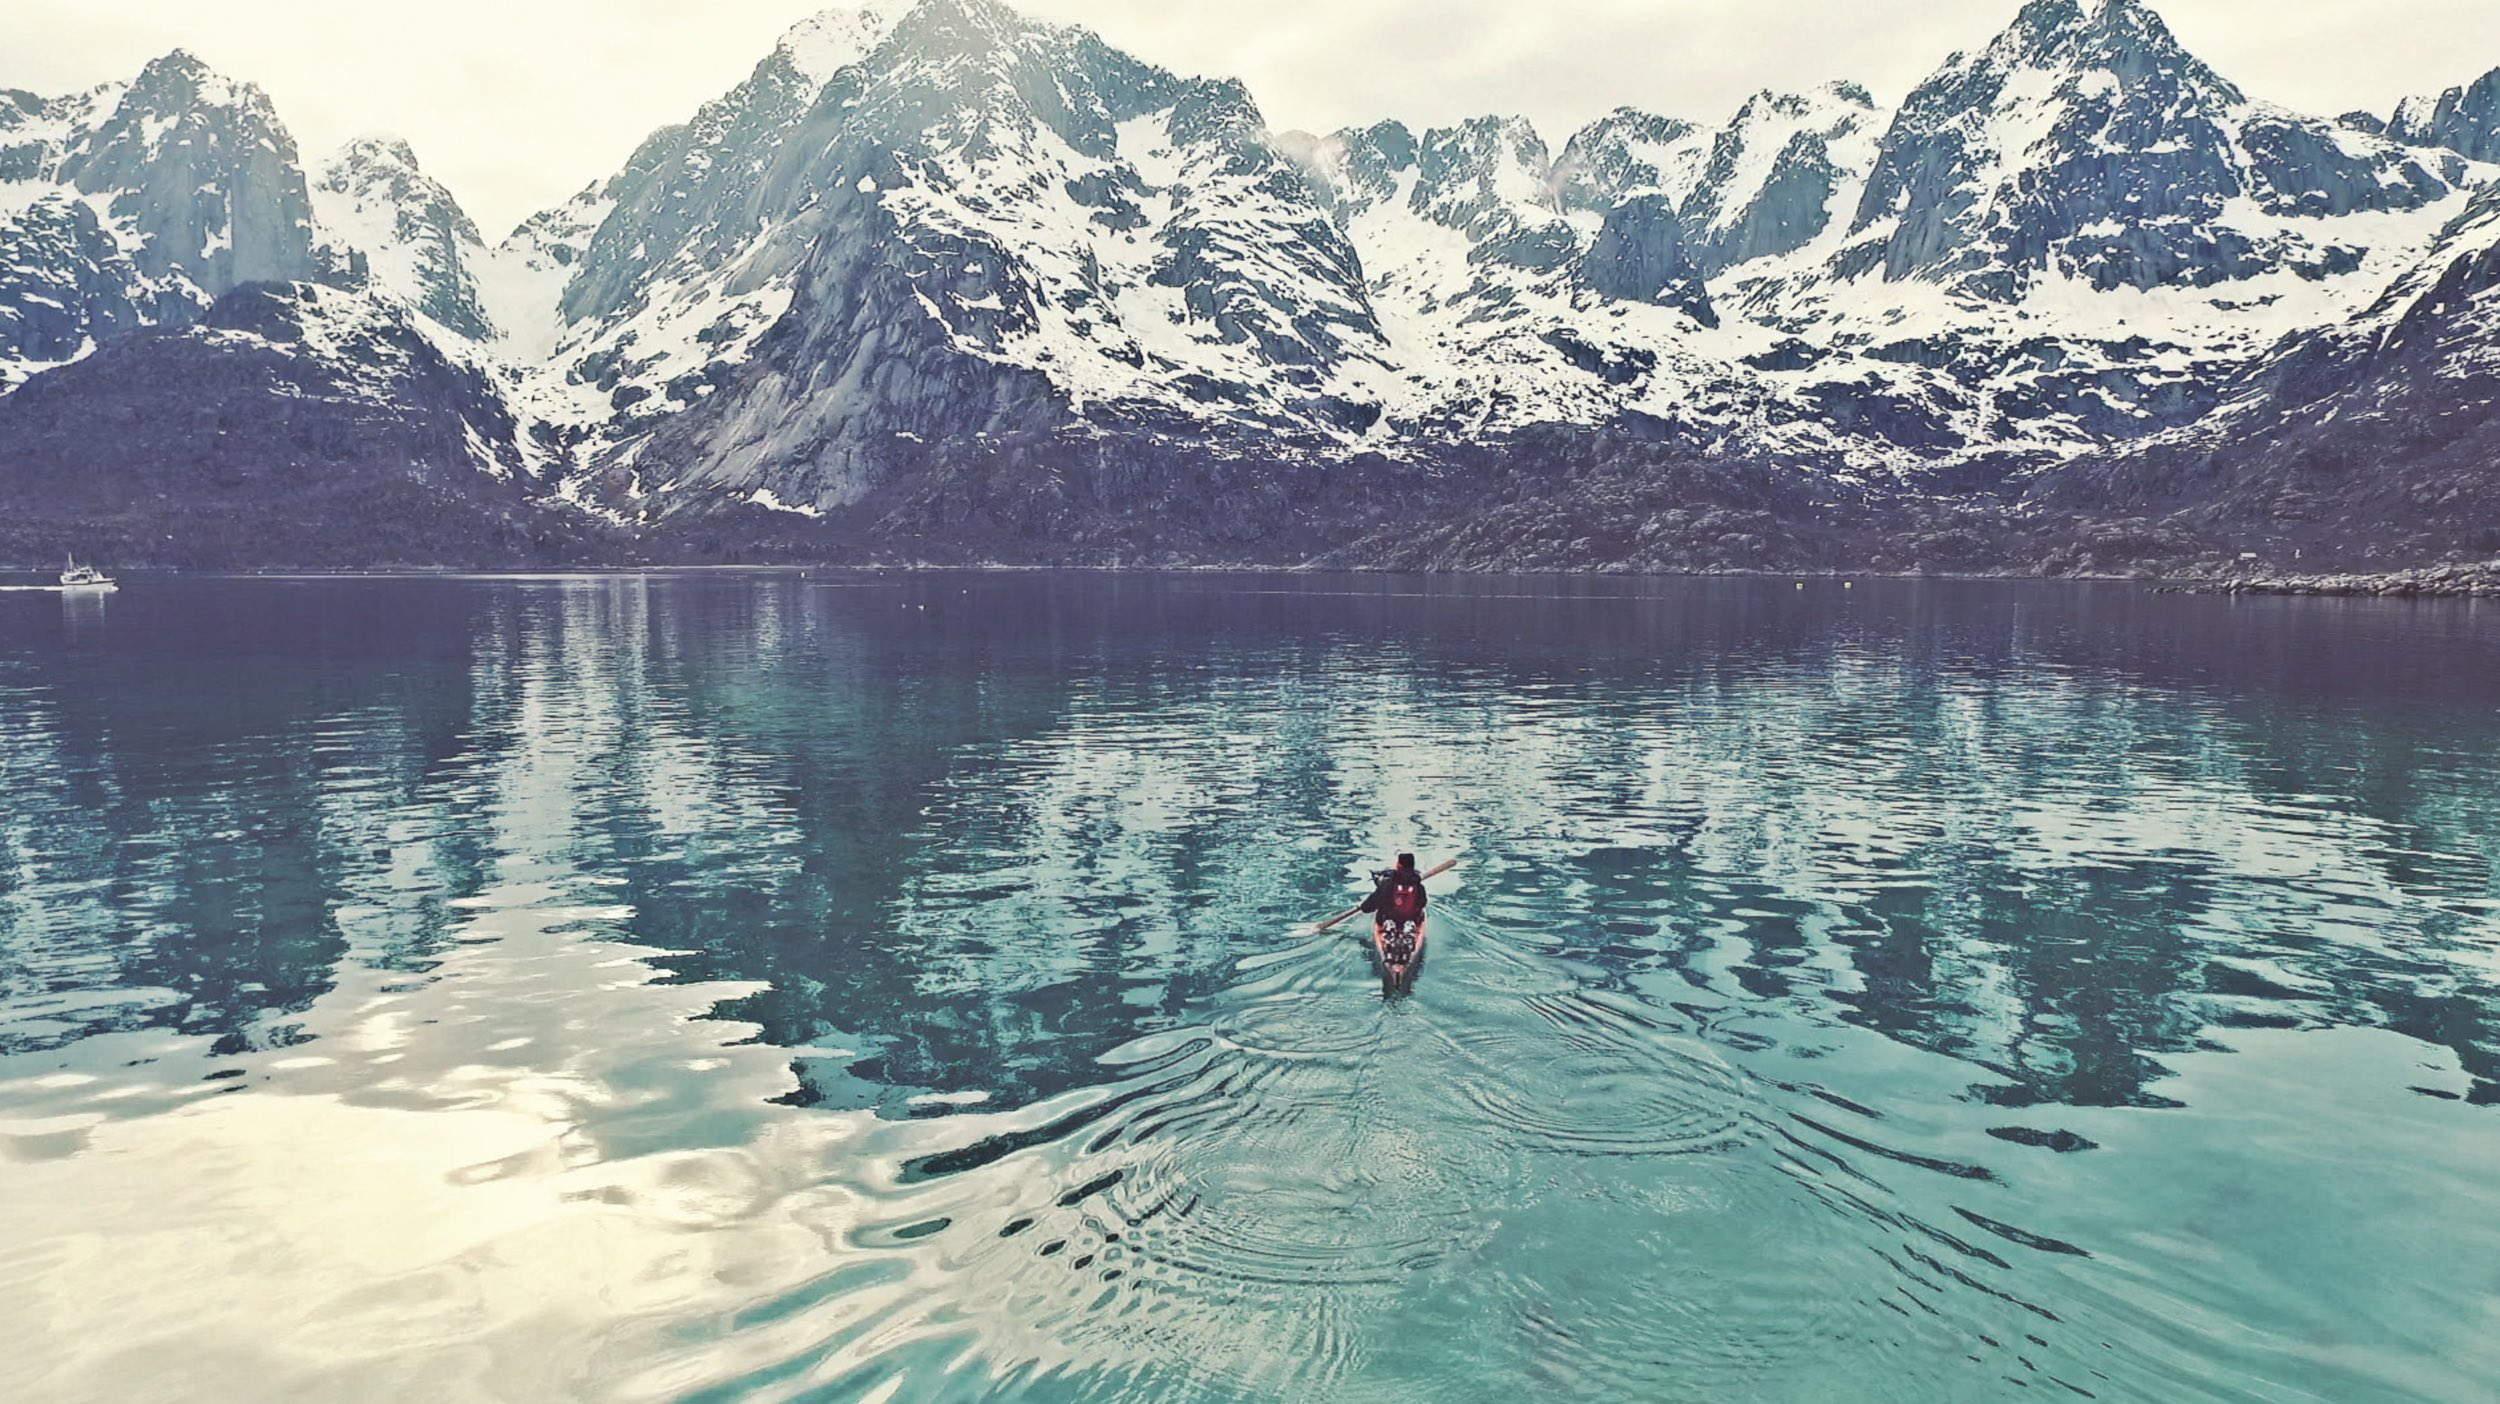 ONE DAY I WILL - DREAMS OF CROSSING THE ATLANTIC AND ARCTIC CANOING